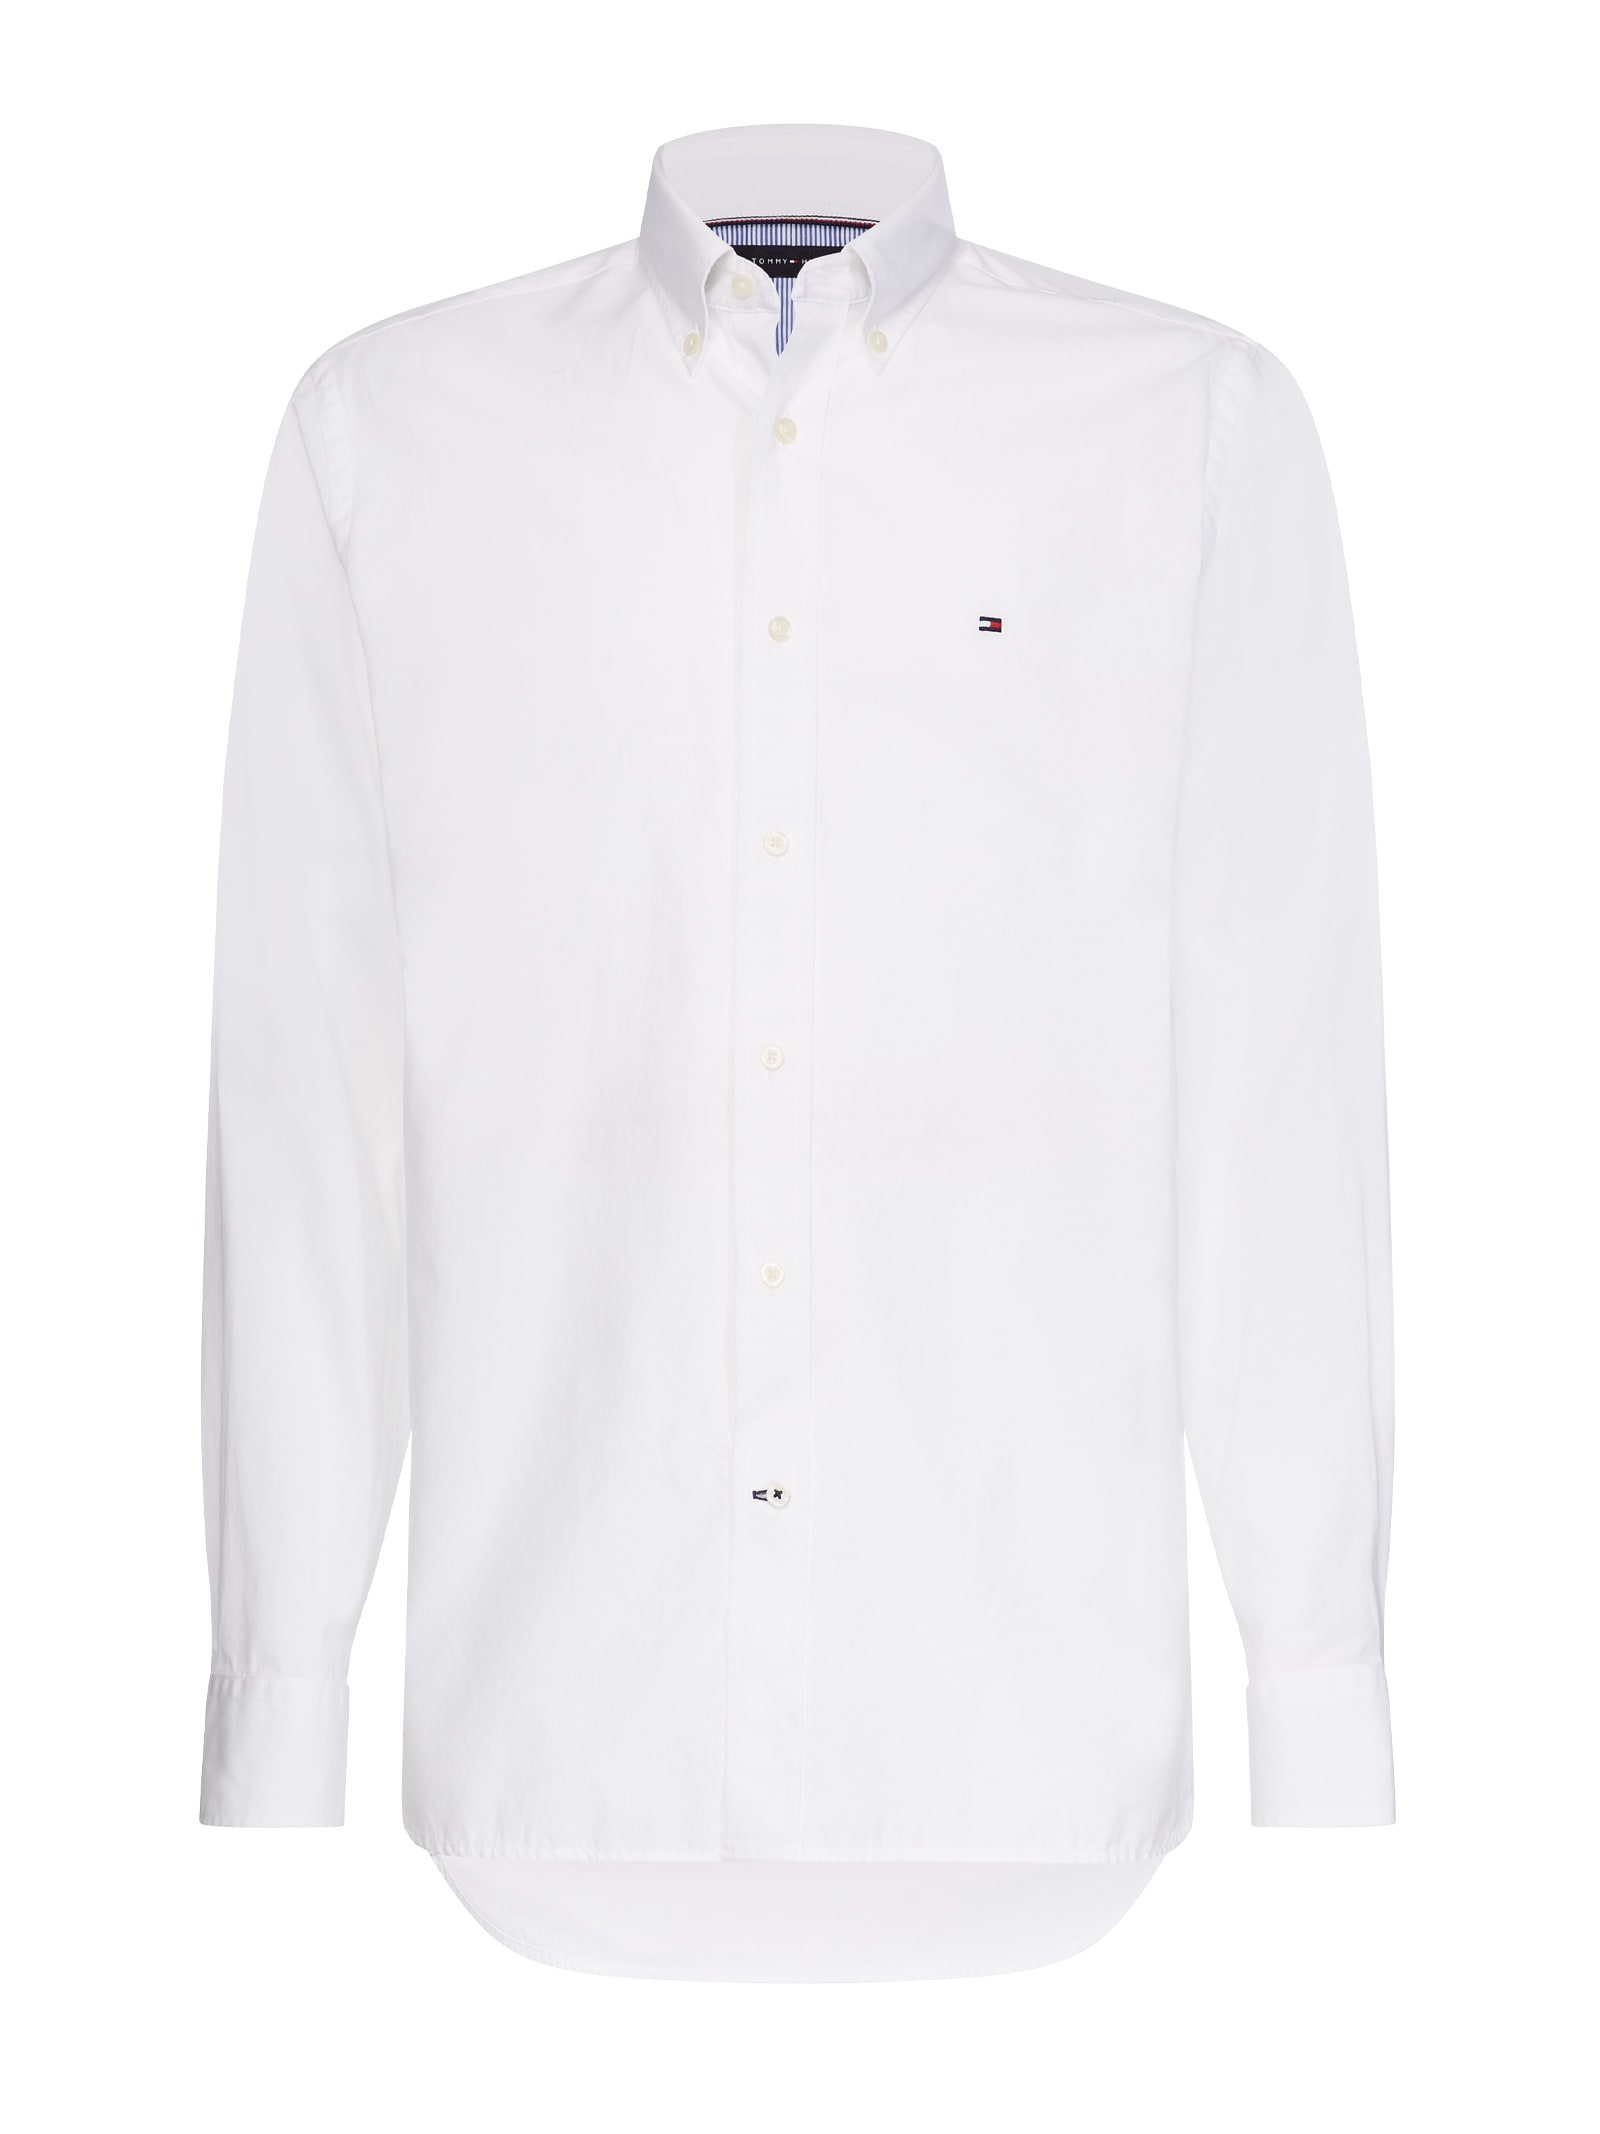 Tommy Hilfiger Tommy Hilifer White Shirt